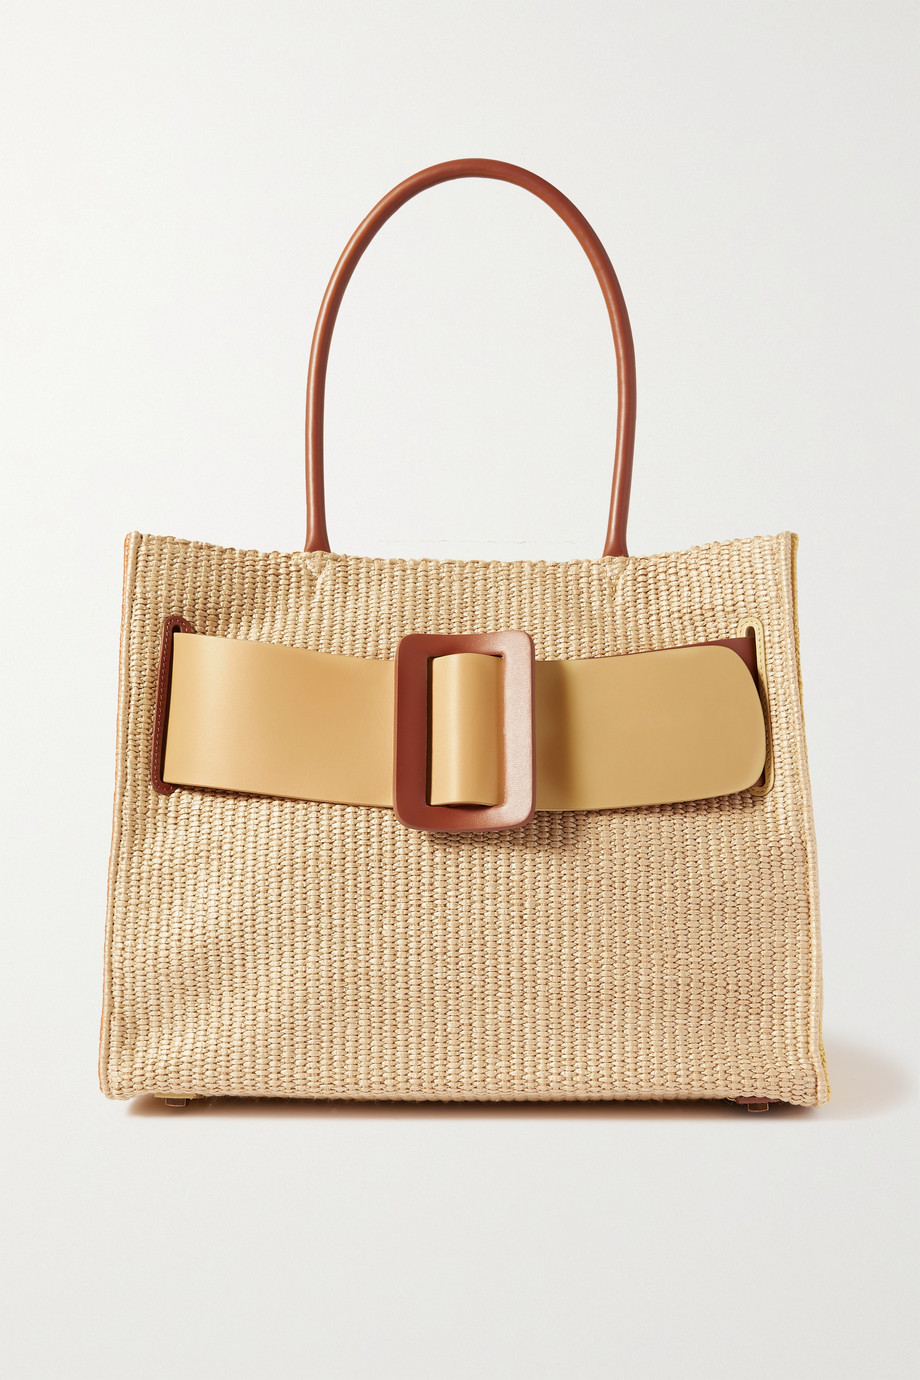 BOYY Bobby 36 buckled color-block leather-trimmed raffia tote,Beige